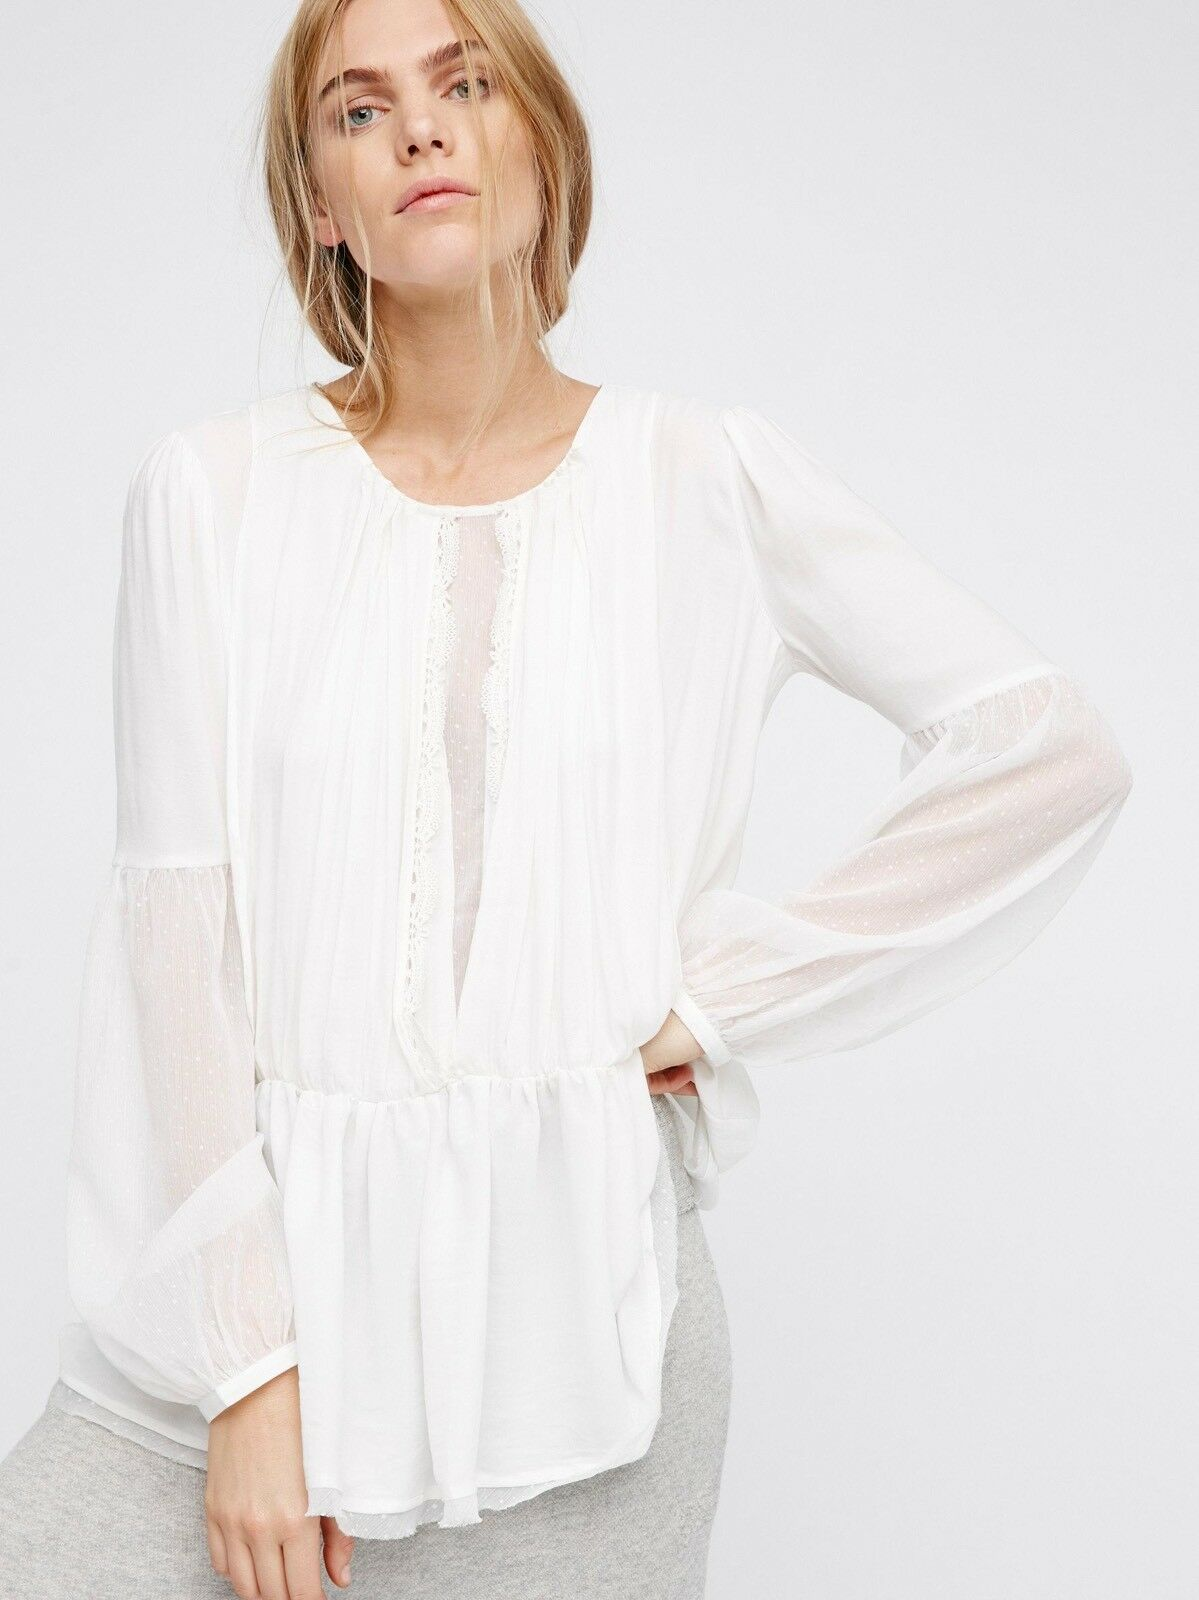 NWT Free People The Soul Serene Blouse Victorian Peplum Lace LS TOP Ivory M